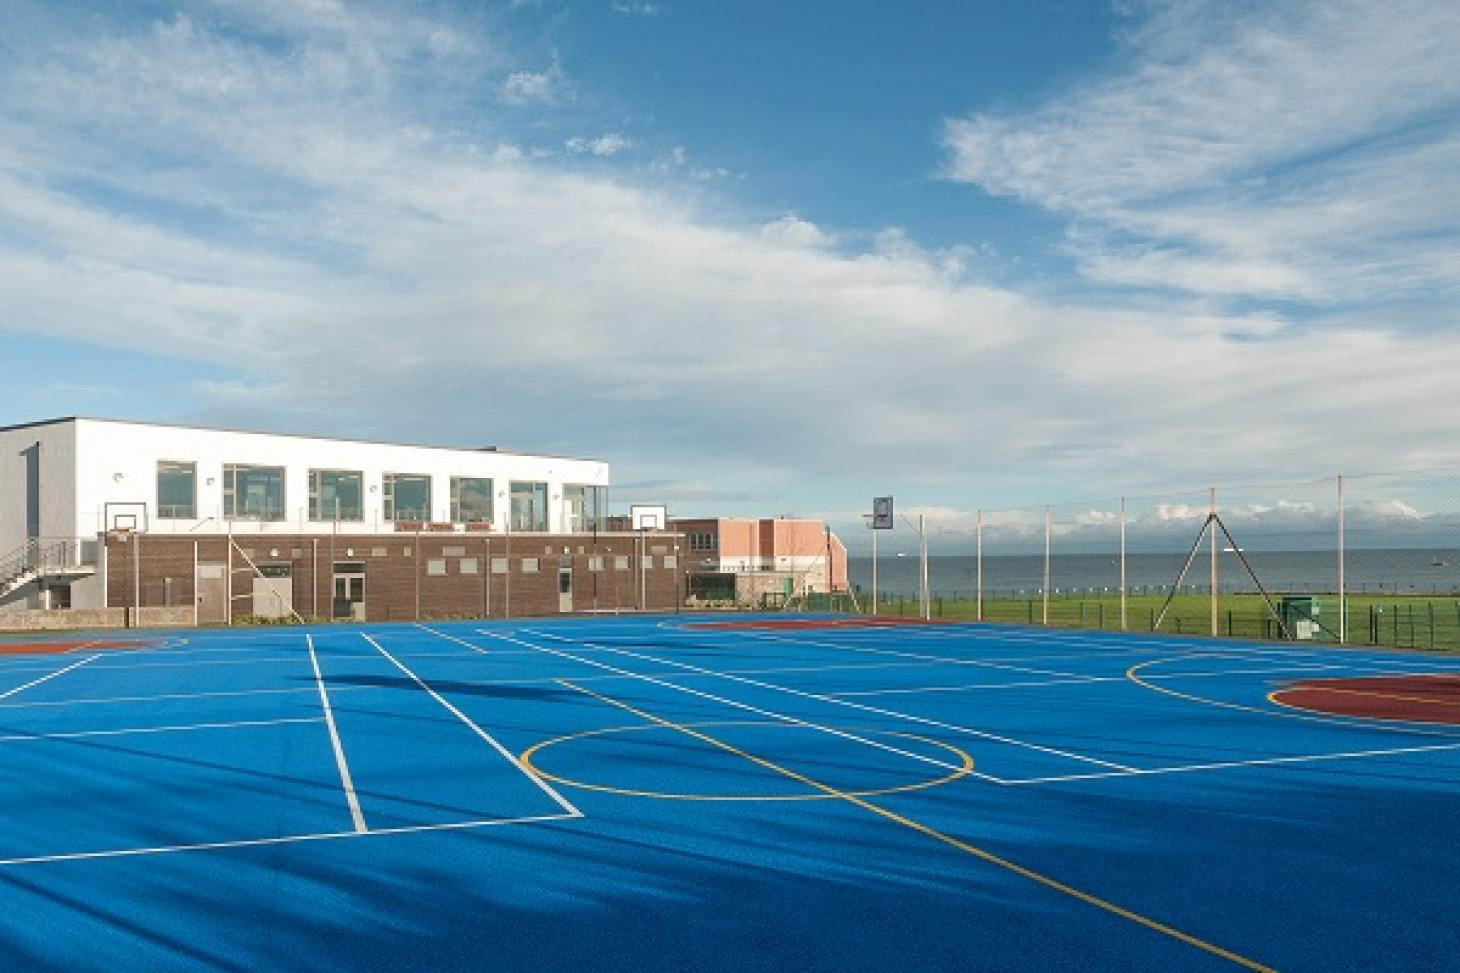 Loreto Abbey Sports Hall Outdoor | Hard (macadam) tennis court